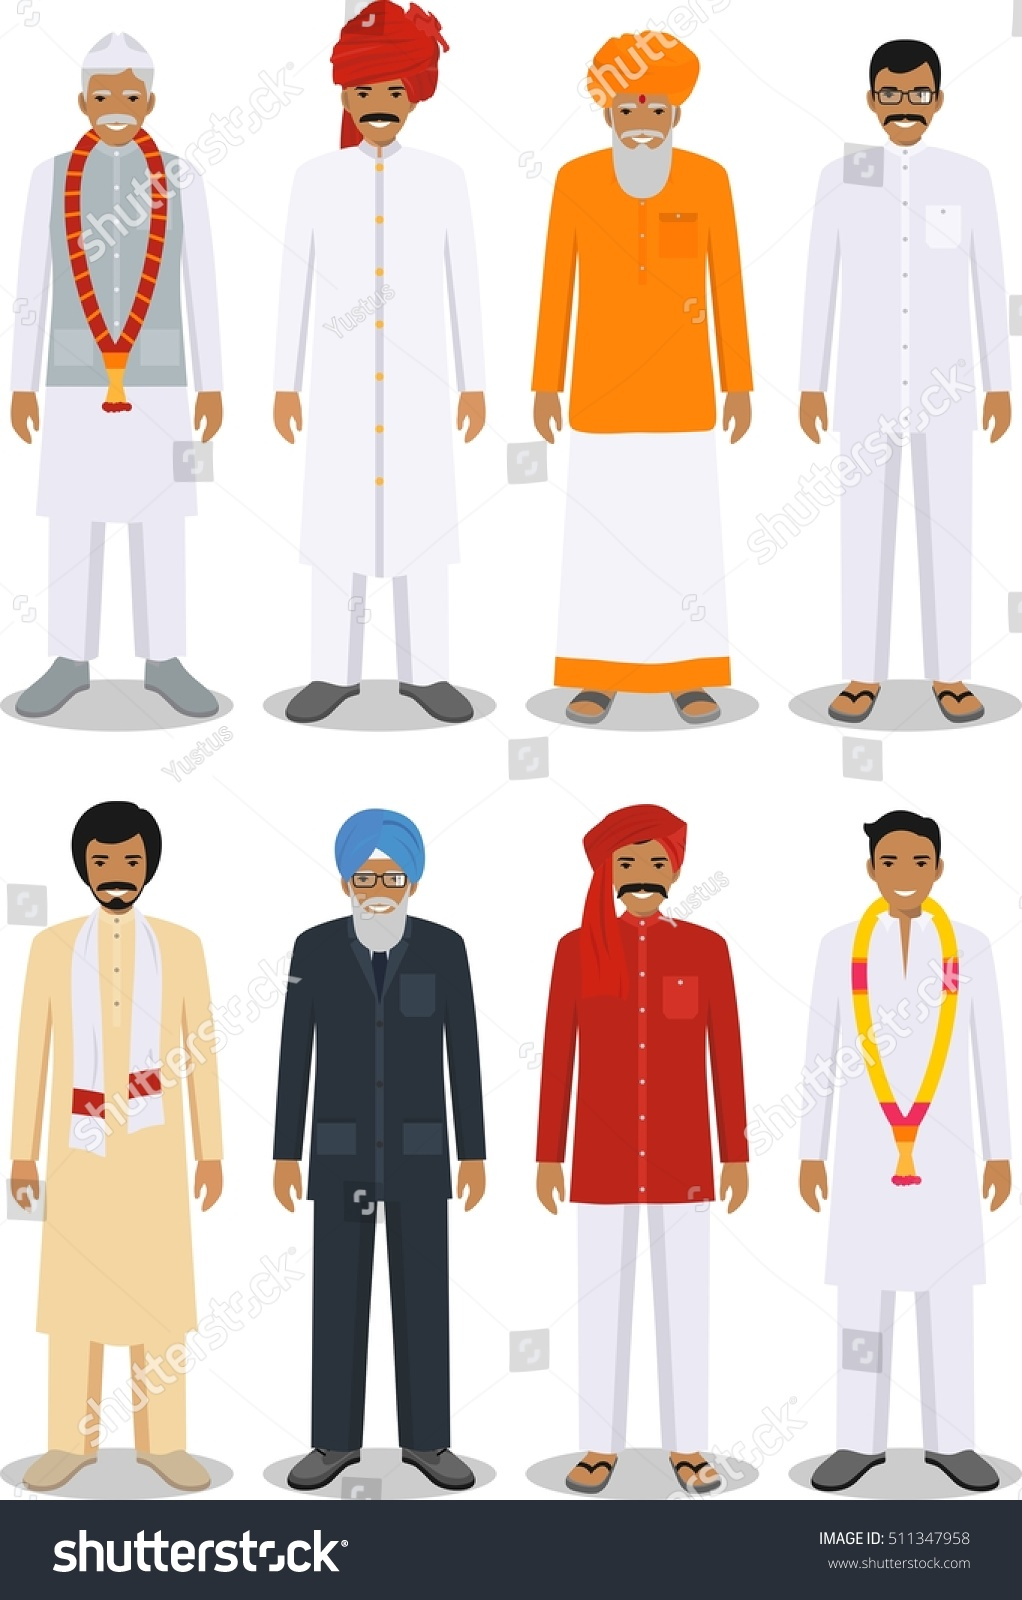 east peoria hindu single men The central illinois singles group is about having fun, maybe trying new things,  and meeting new friends we welcome all active single adults from the area.